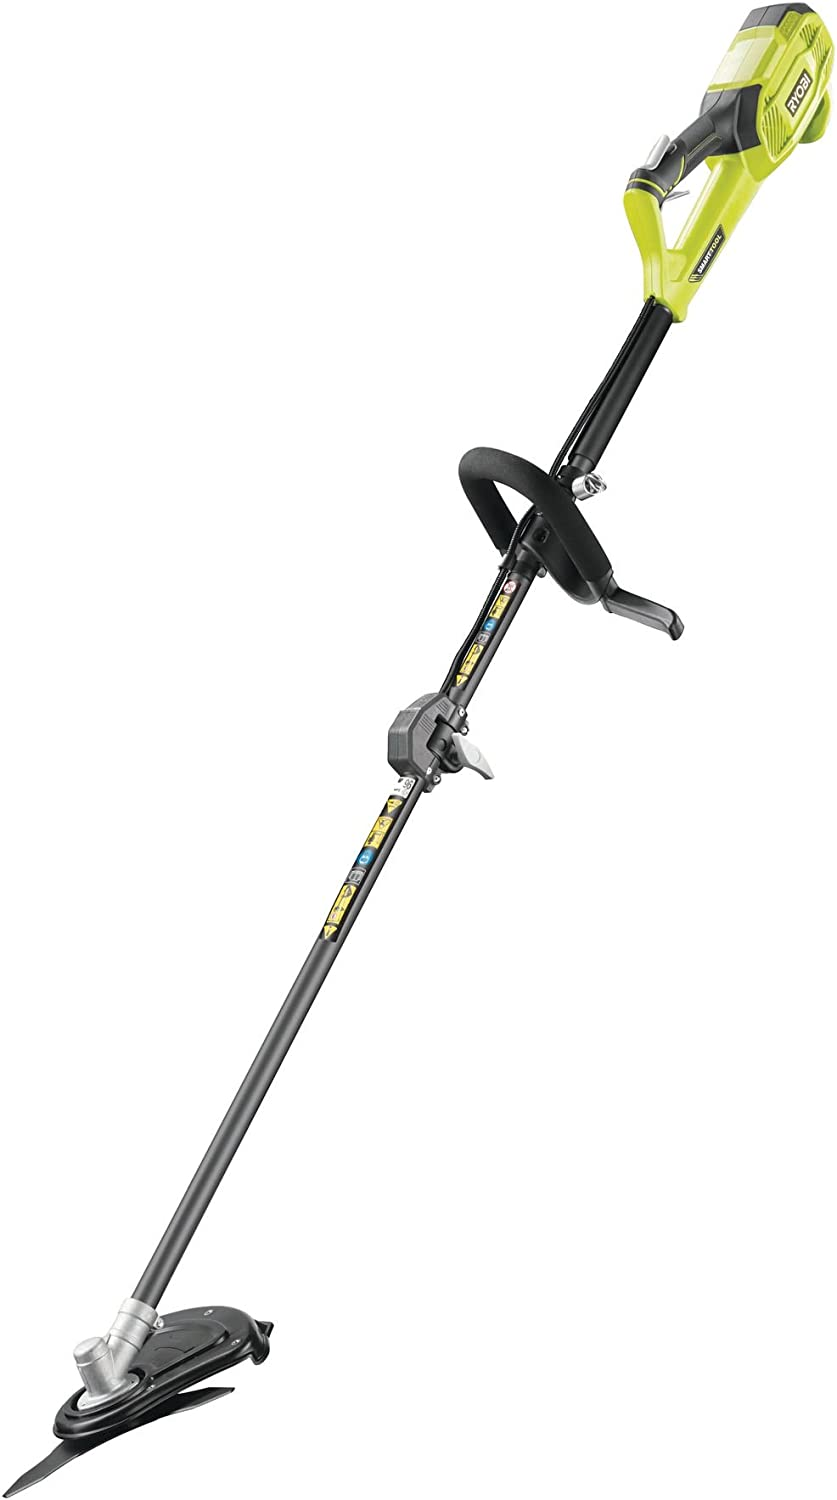 Ryobi RBC1226I Electric 2-in-1 Brush Cutter, 1200 W